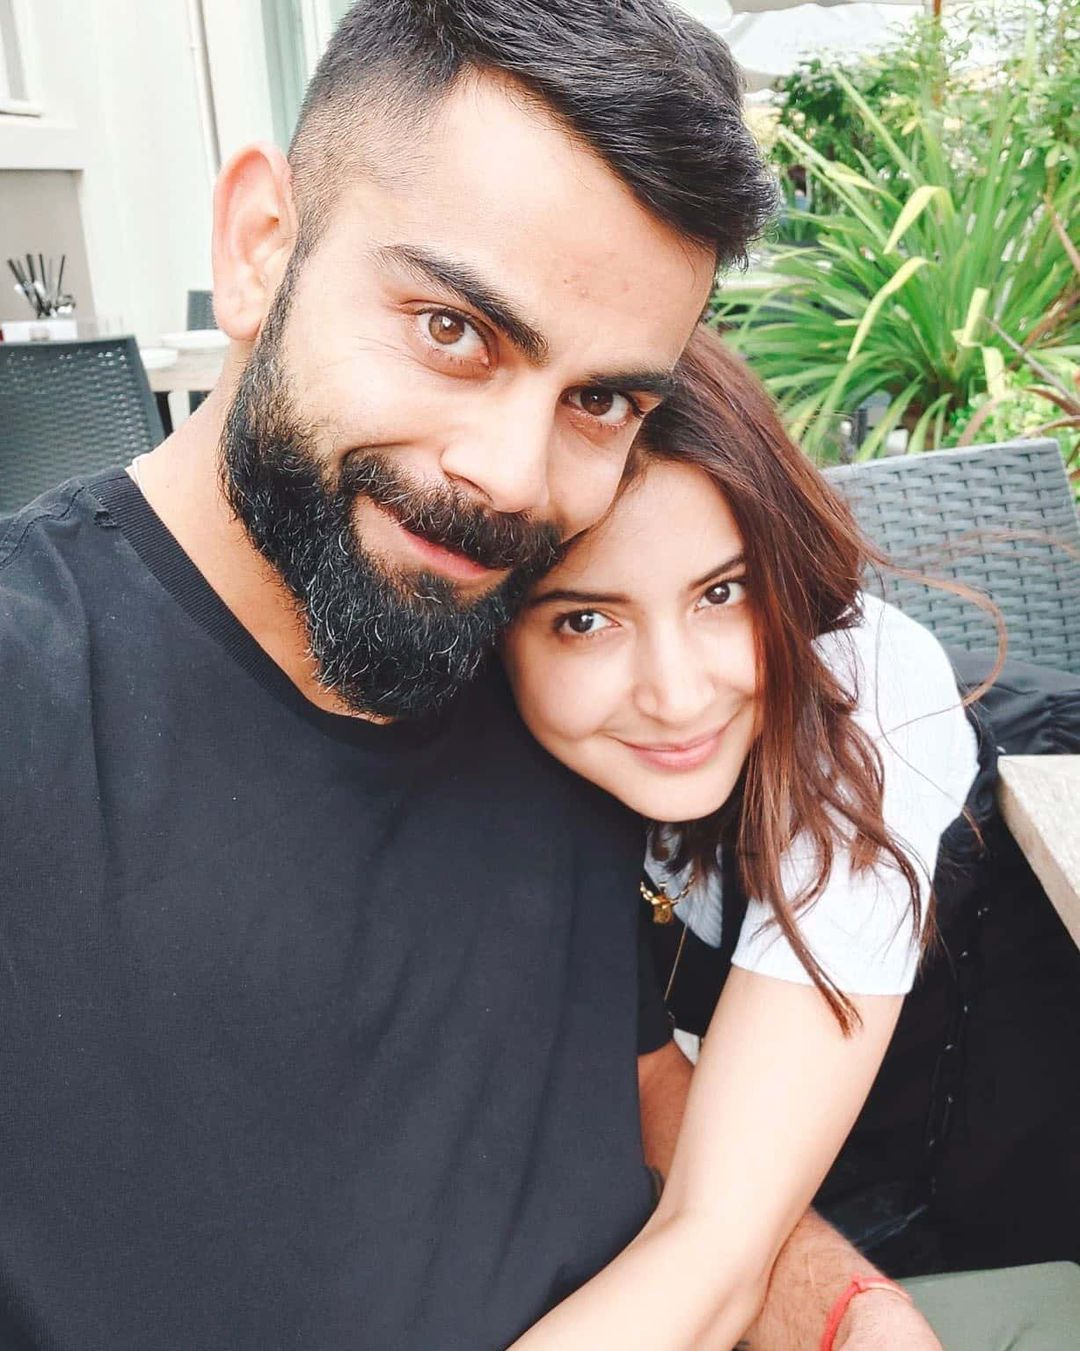 Virat Kohli's Paternity Leave and Indian Cricket's Misogyny Problem